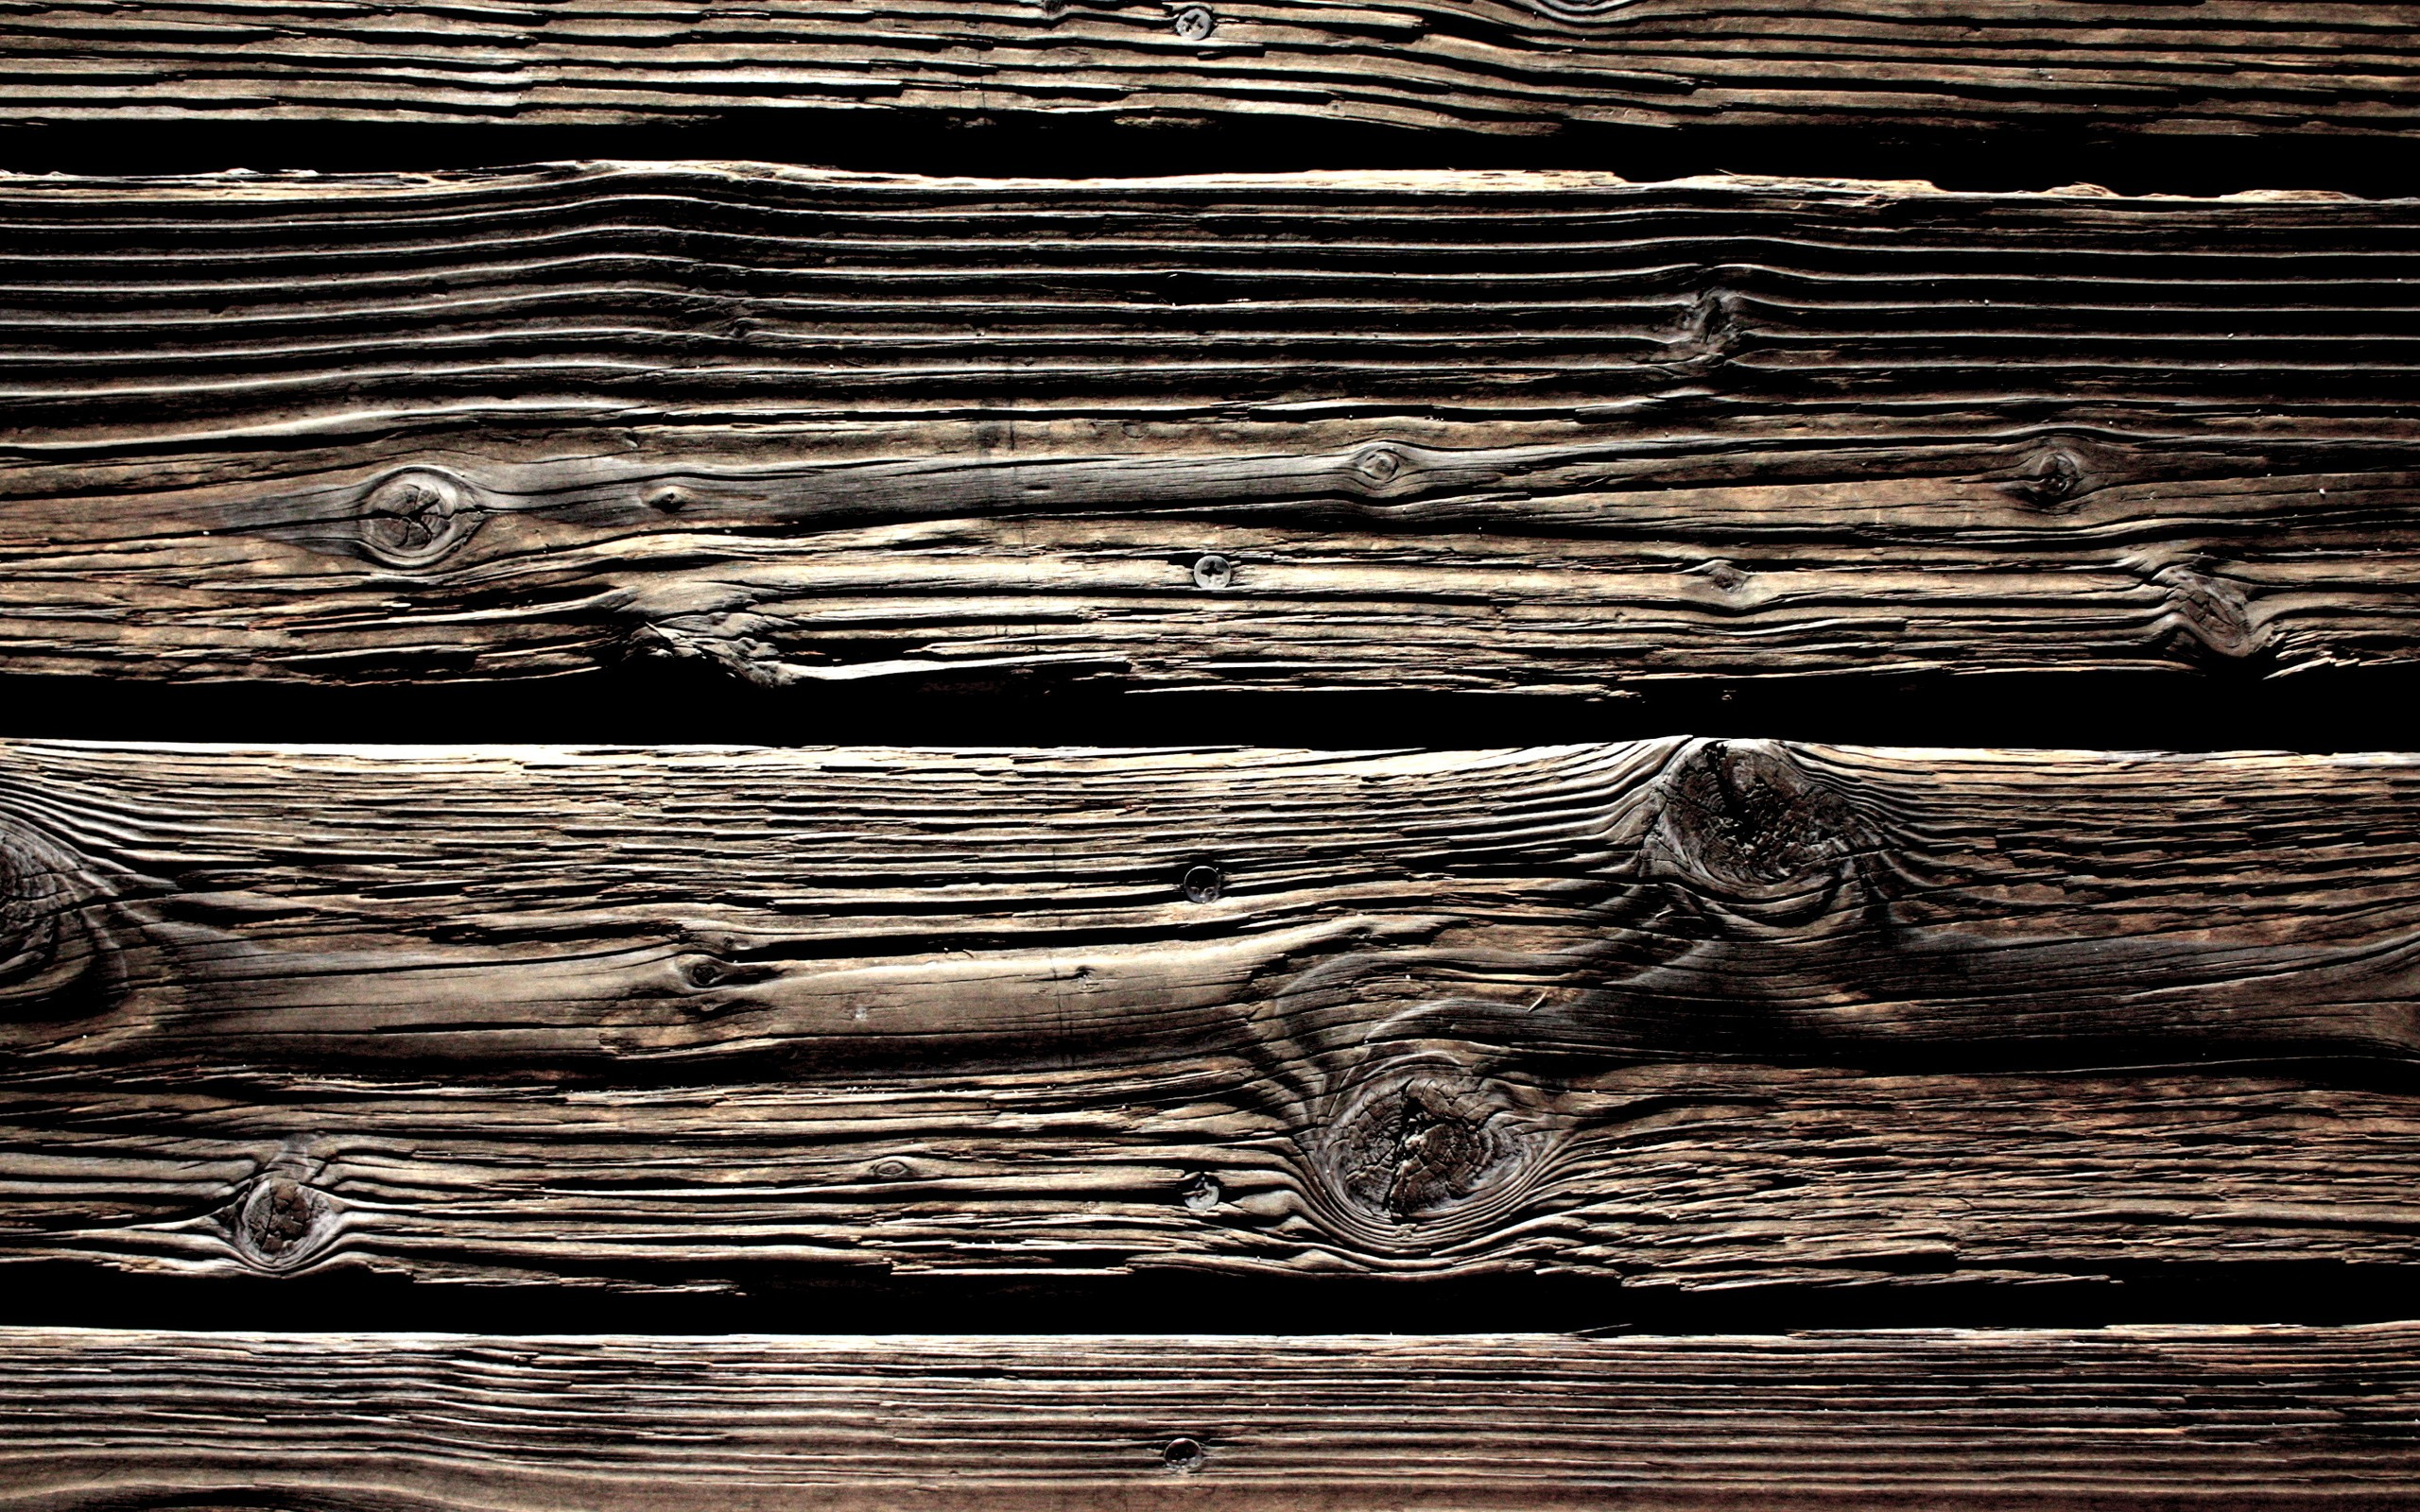 Wallpaper That Looks Like Old Wood